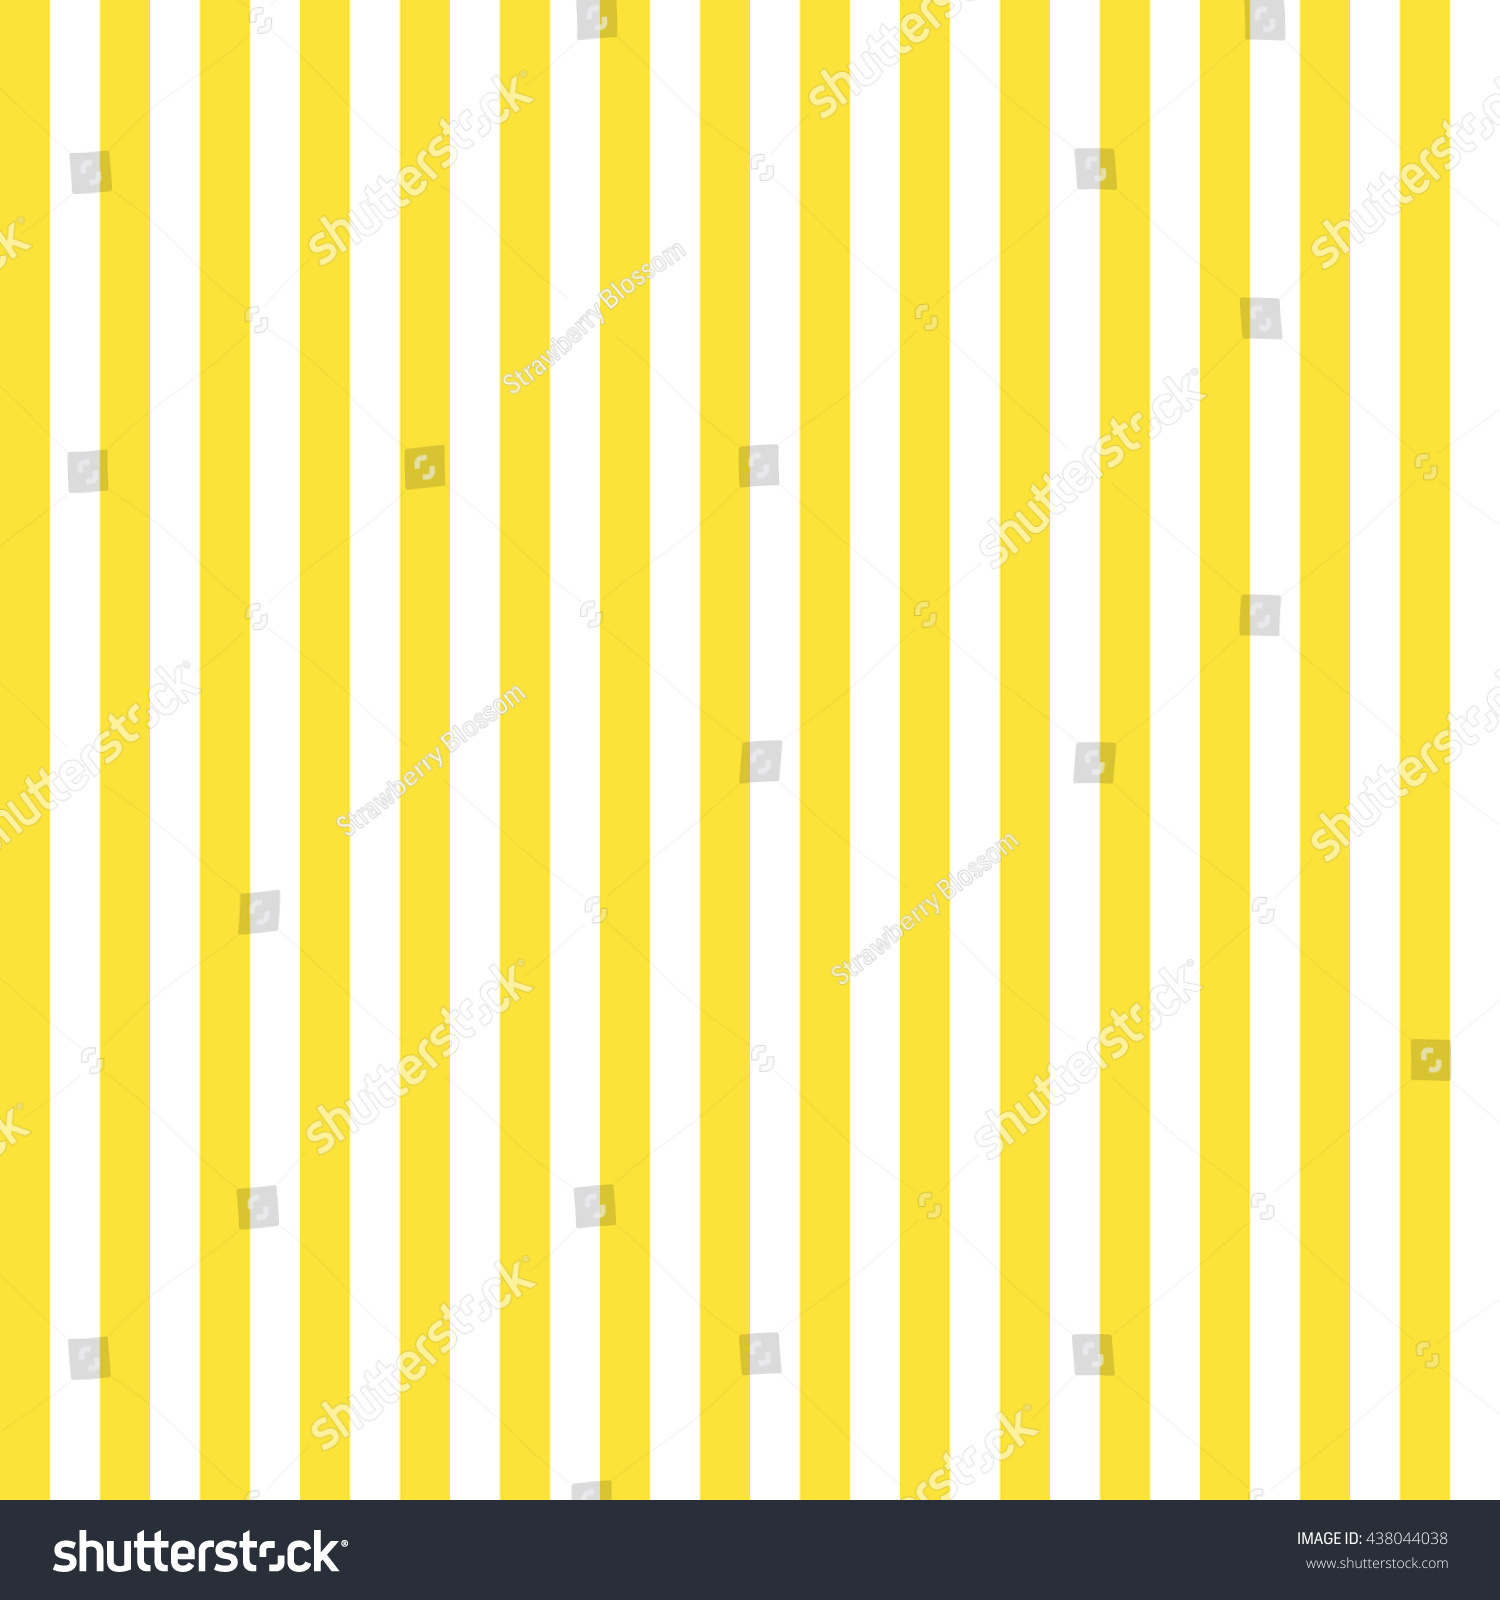 Pattern Stripes Seamless Yellow White Stripes Stock Vector ...